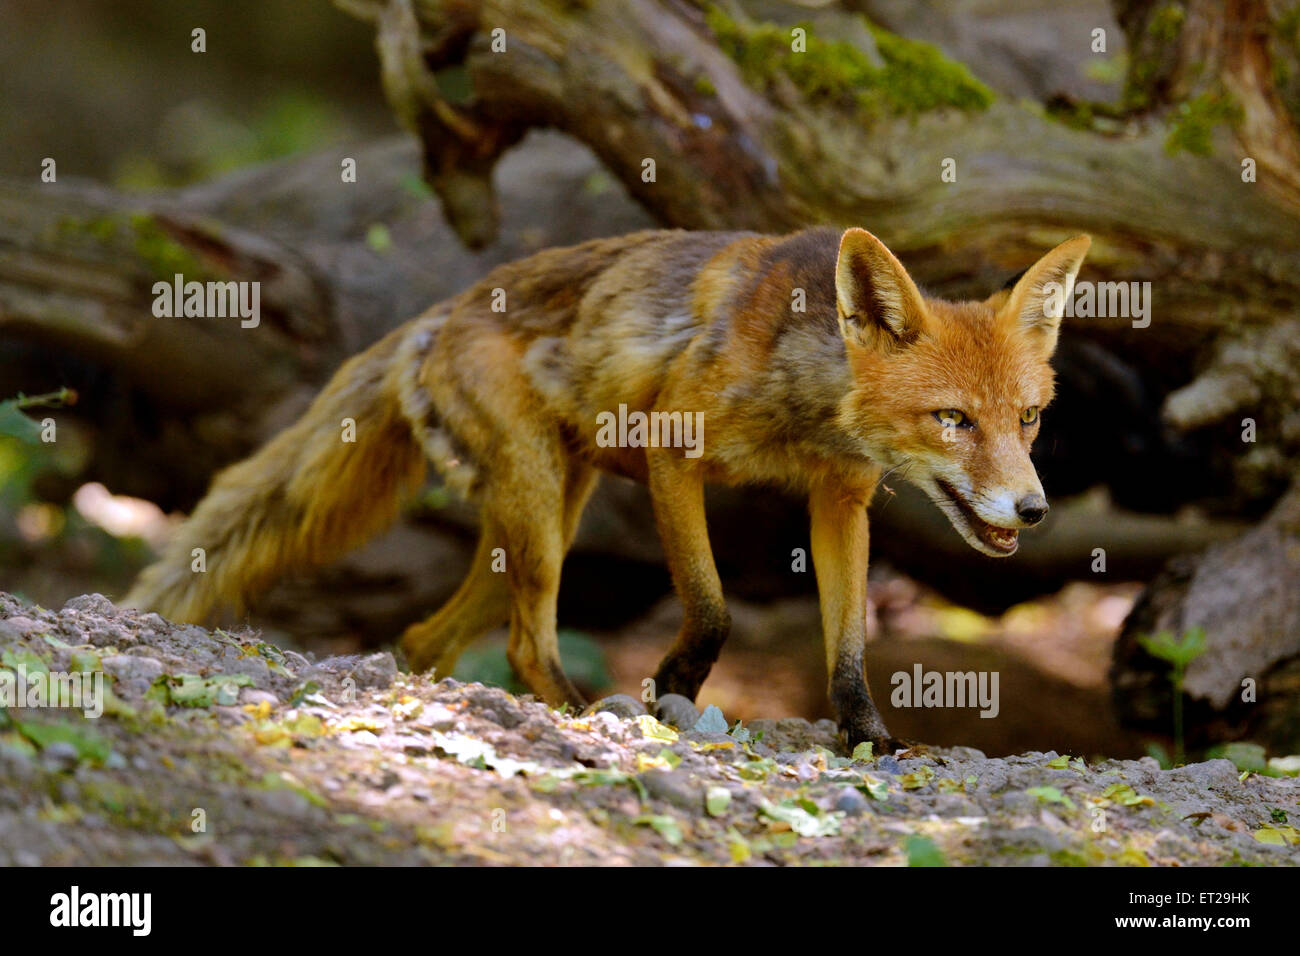 Adult Red Fox (Vulpes vulpes) wandering through the woods, Canton of Basel, Switzerland - Stock Image